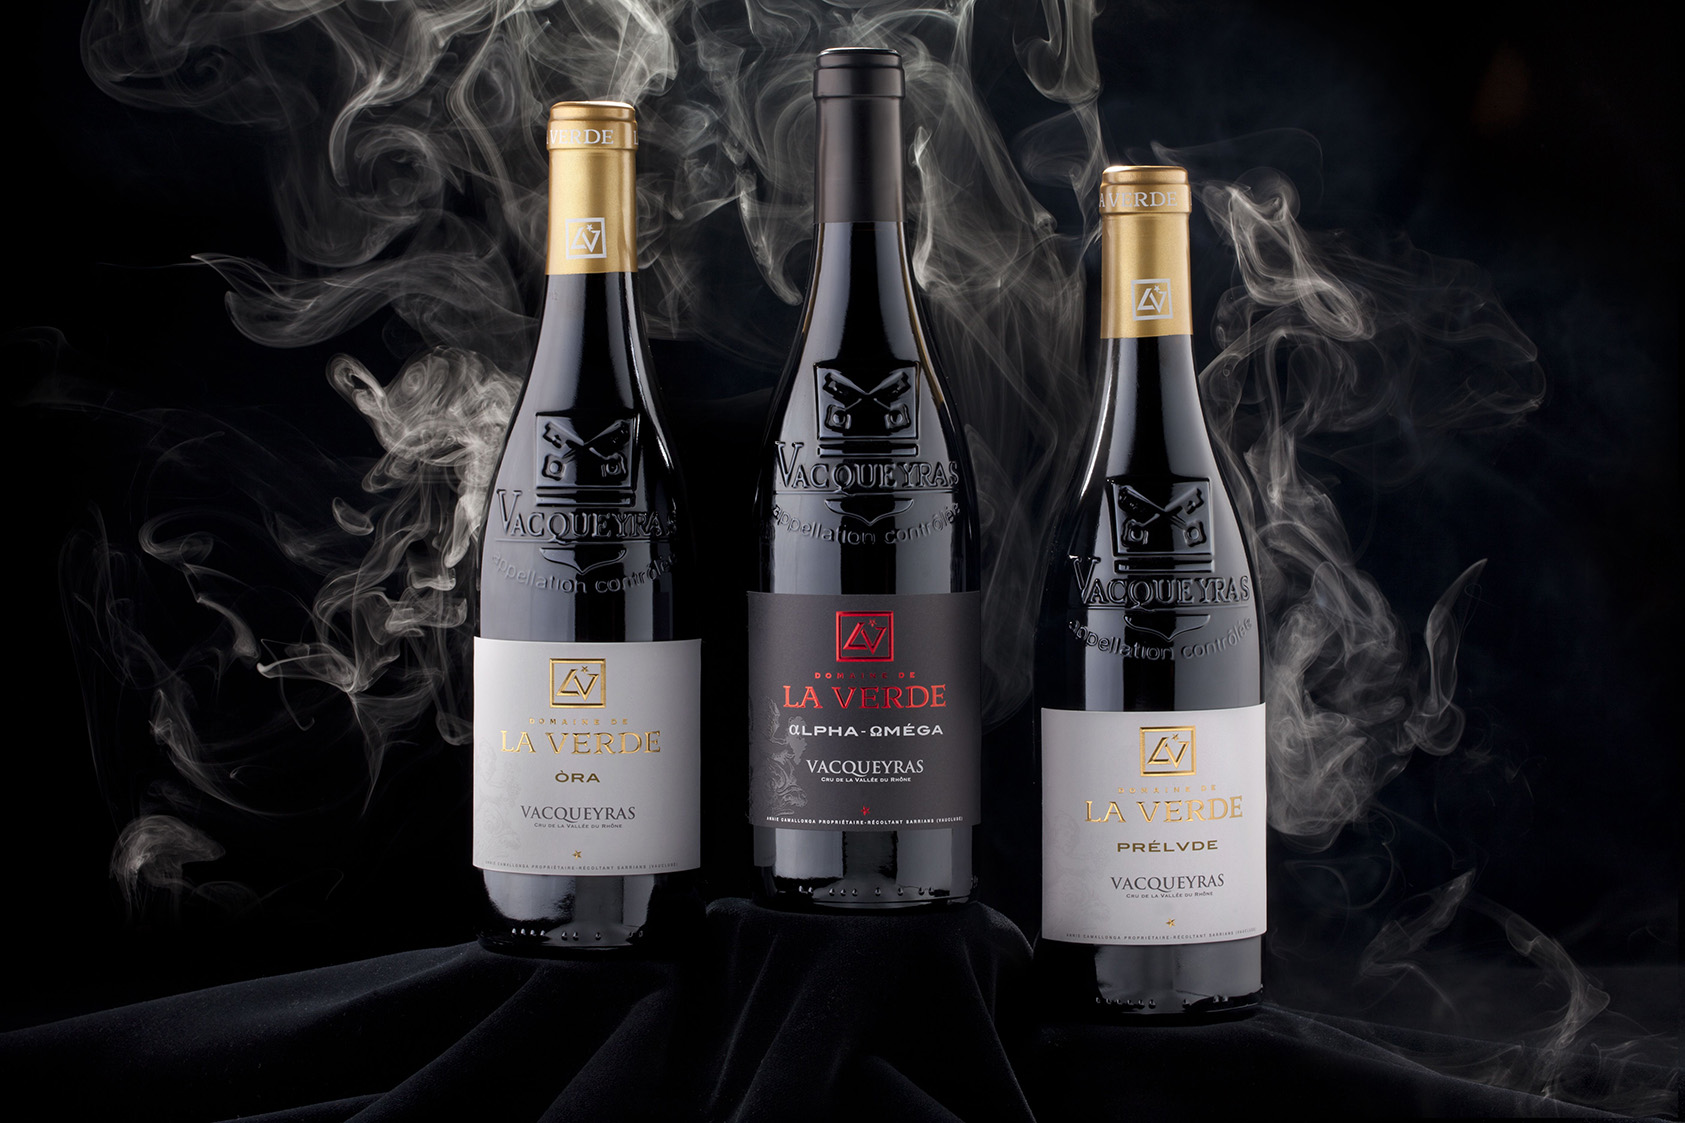 packshot et ambiance bouteilles de vin photographe. Black Bedroom Furniture Sets. Home Design Ideas